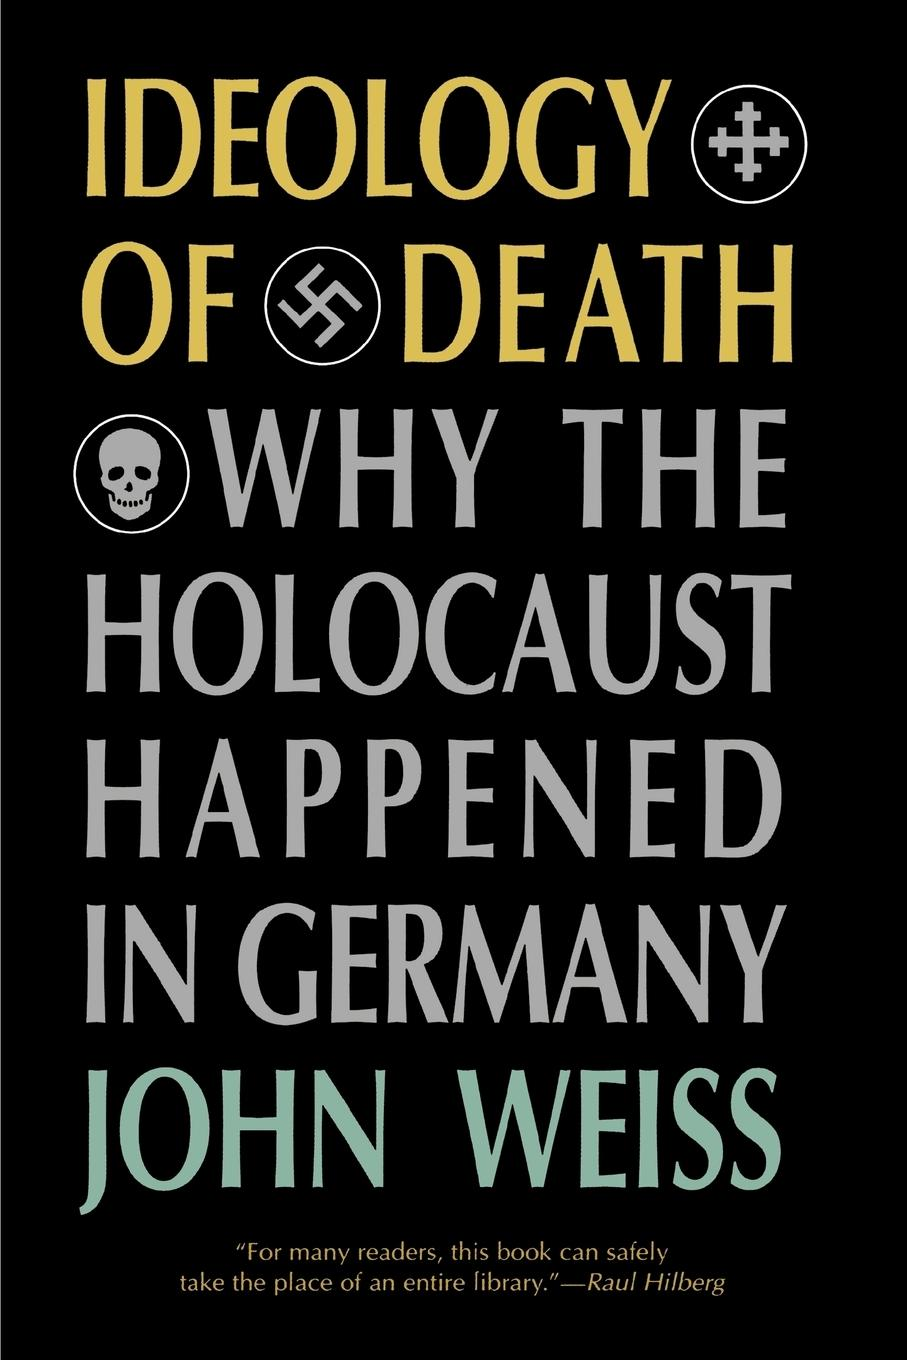 Ideology of Death  Why the Holocaust Happened in Germany  John Weiss  Taschenbuch  Paperback  Englisch  1997 - Weiss, John